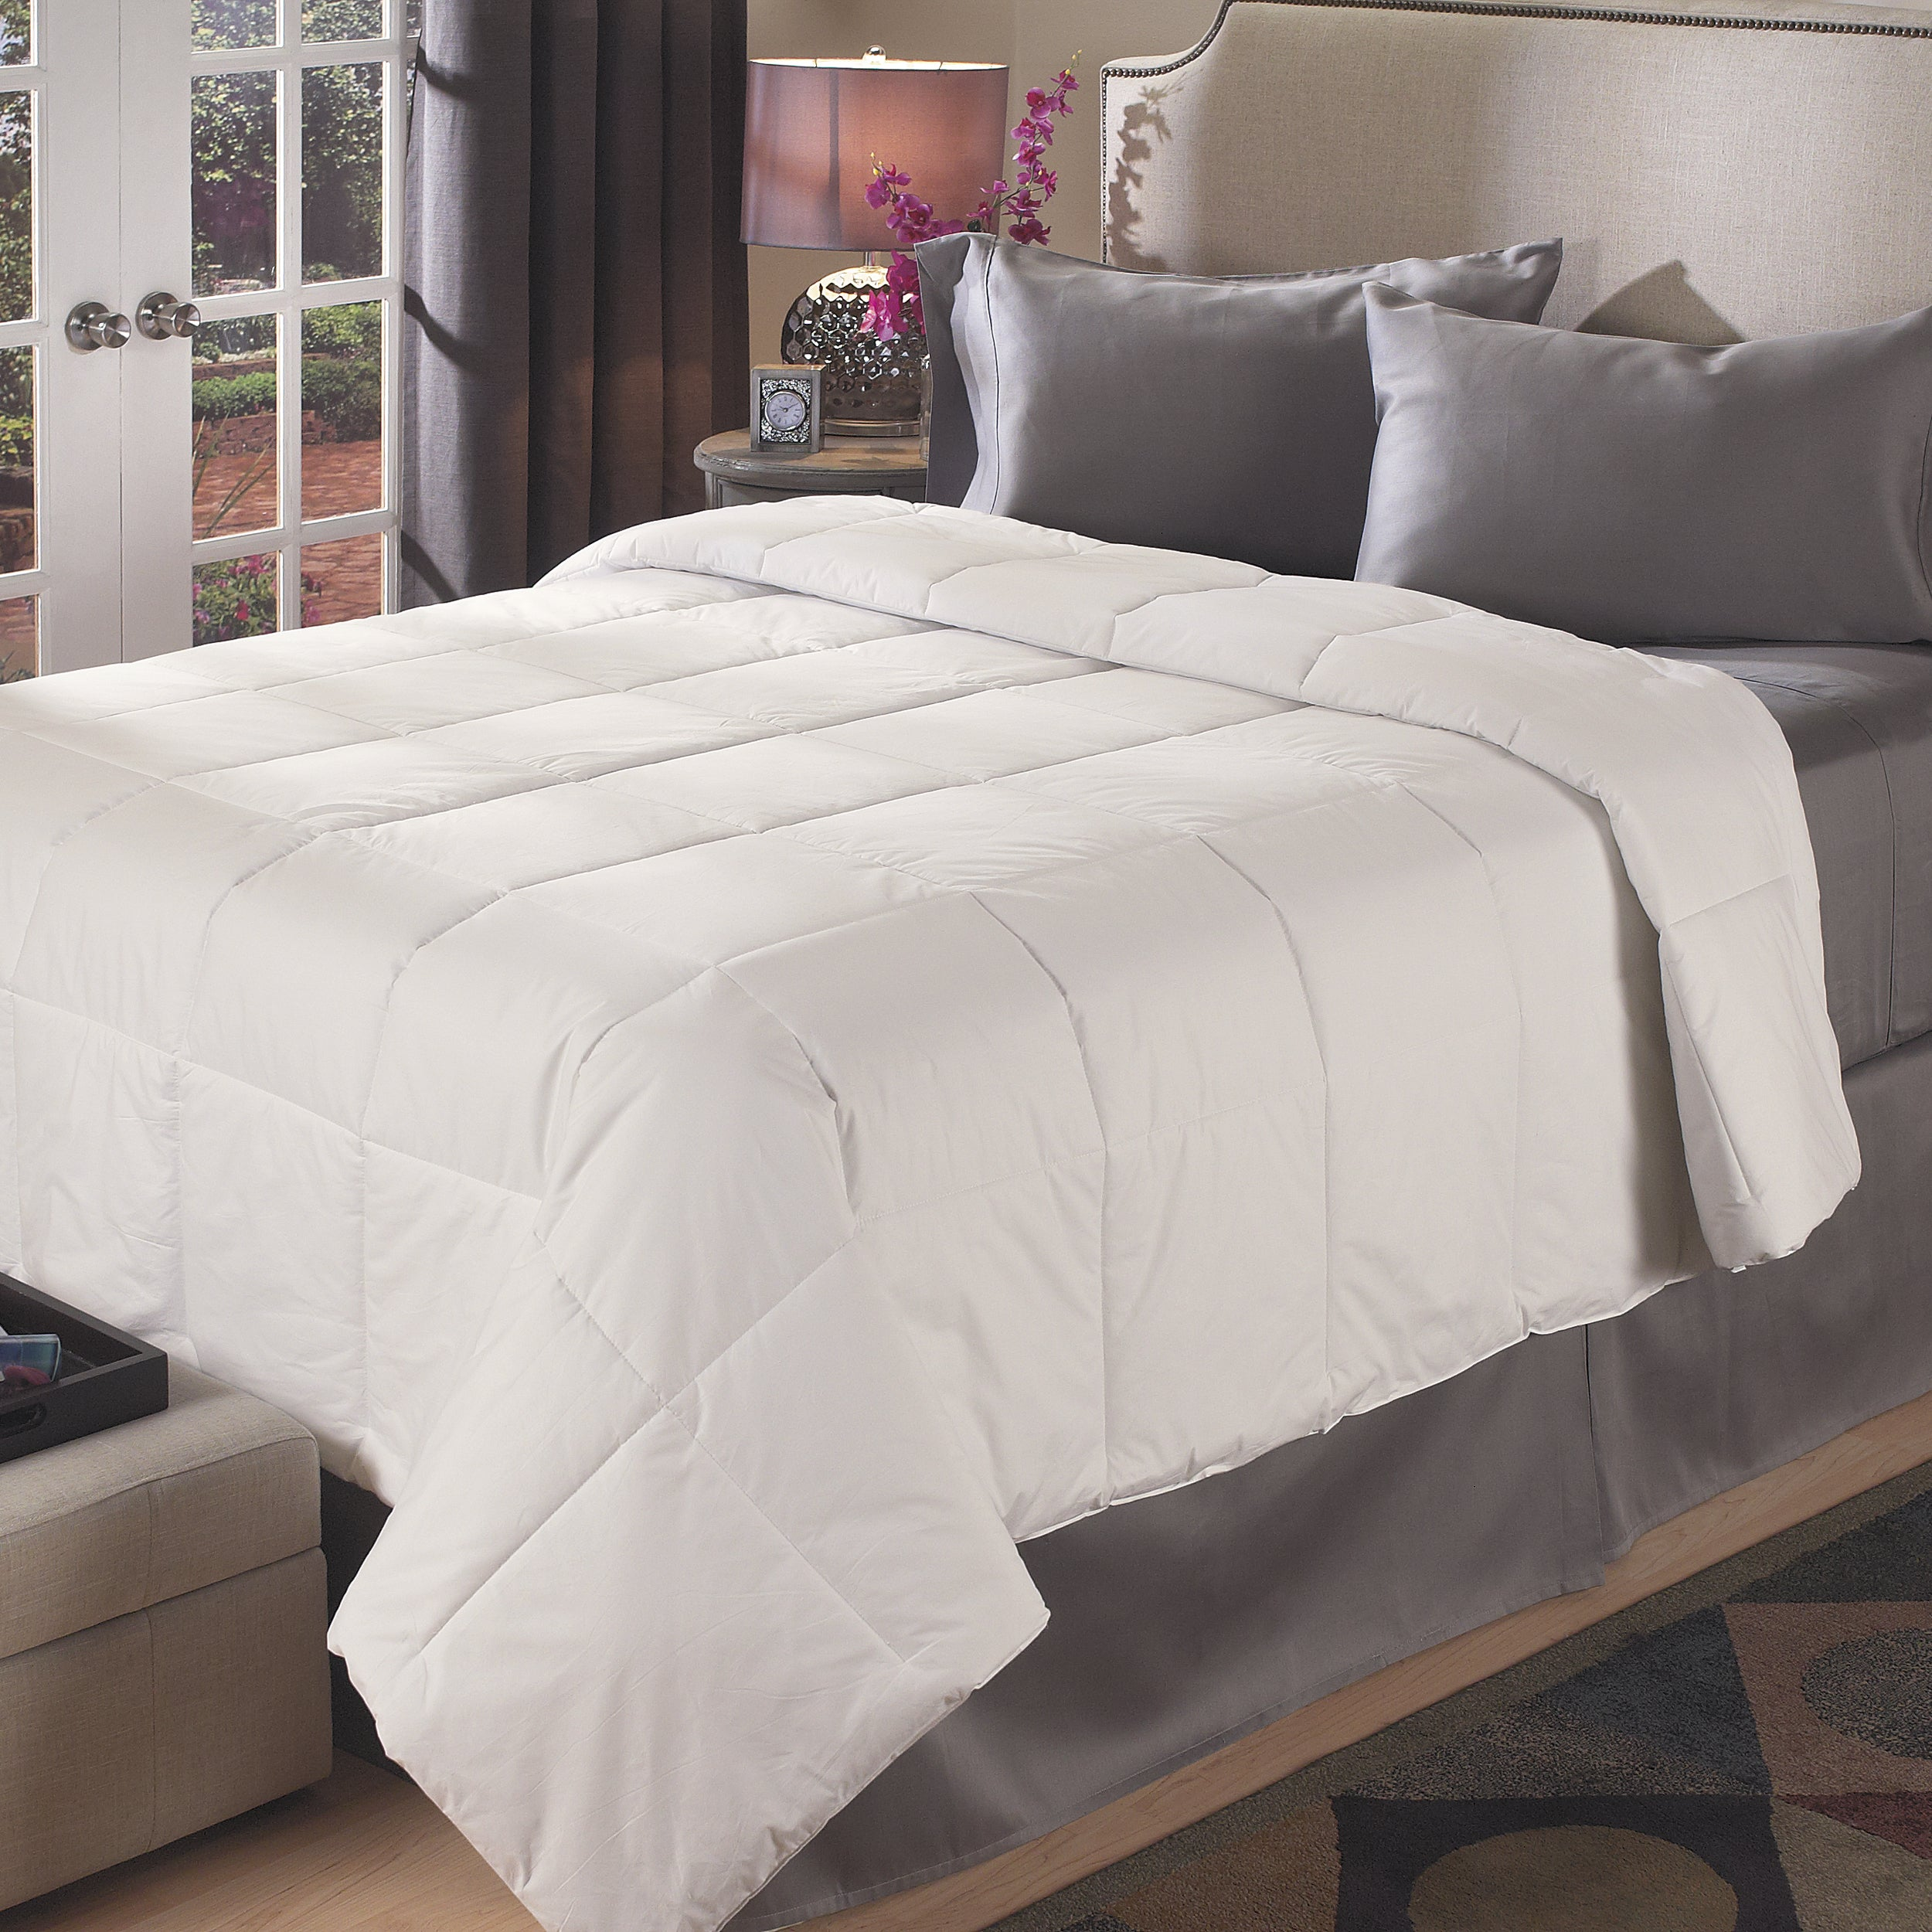 Luxury Sized Medium-weight All Season Down Alternative Comforter - Thumbnail 0